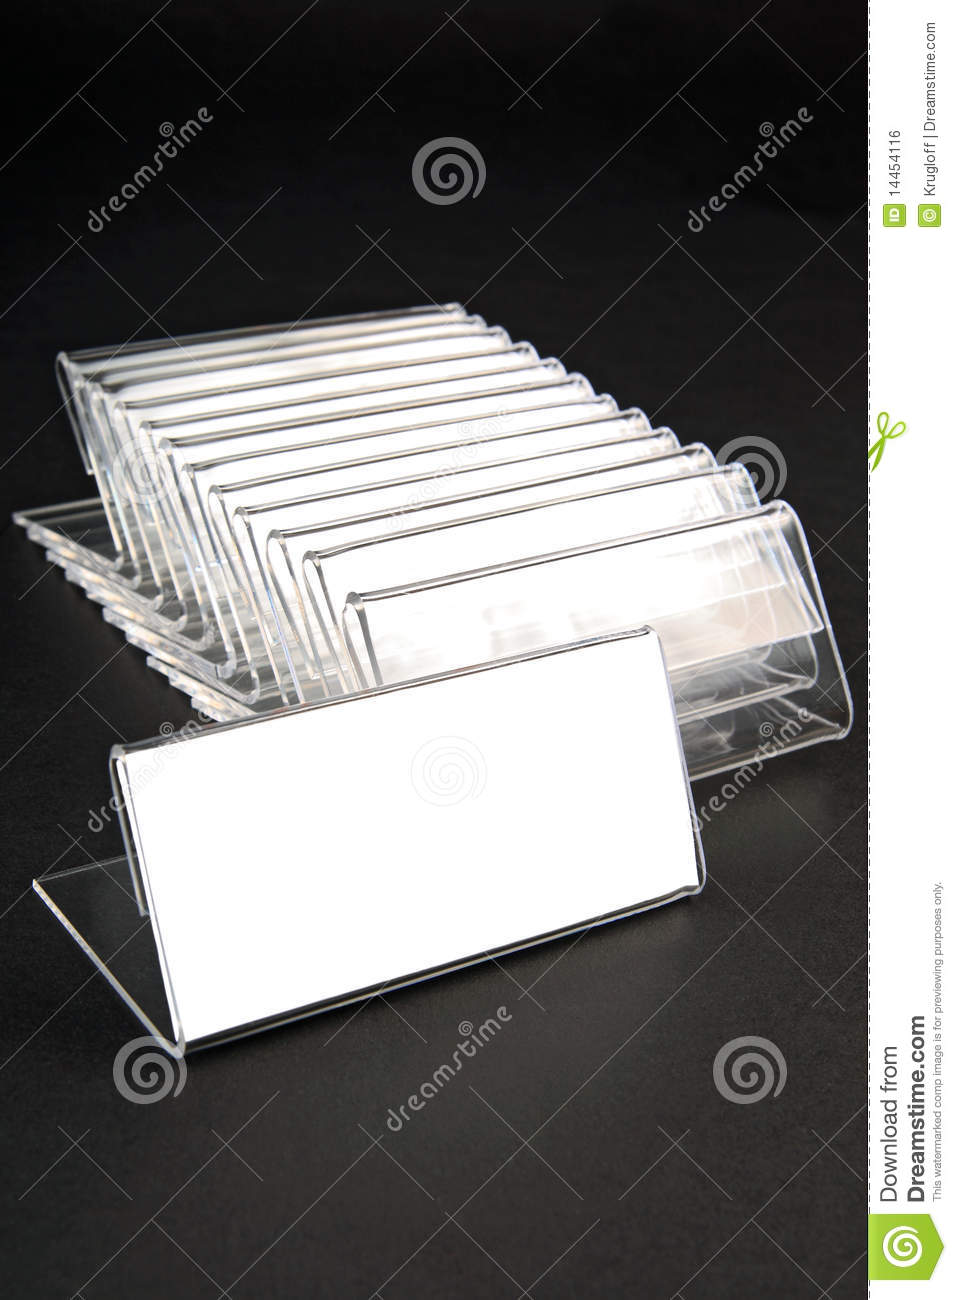 Plastic Holders For Price Tags Royalty Free Stock Image